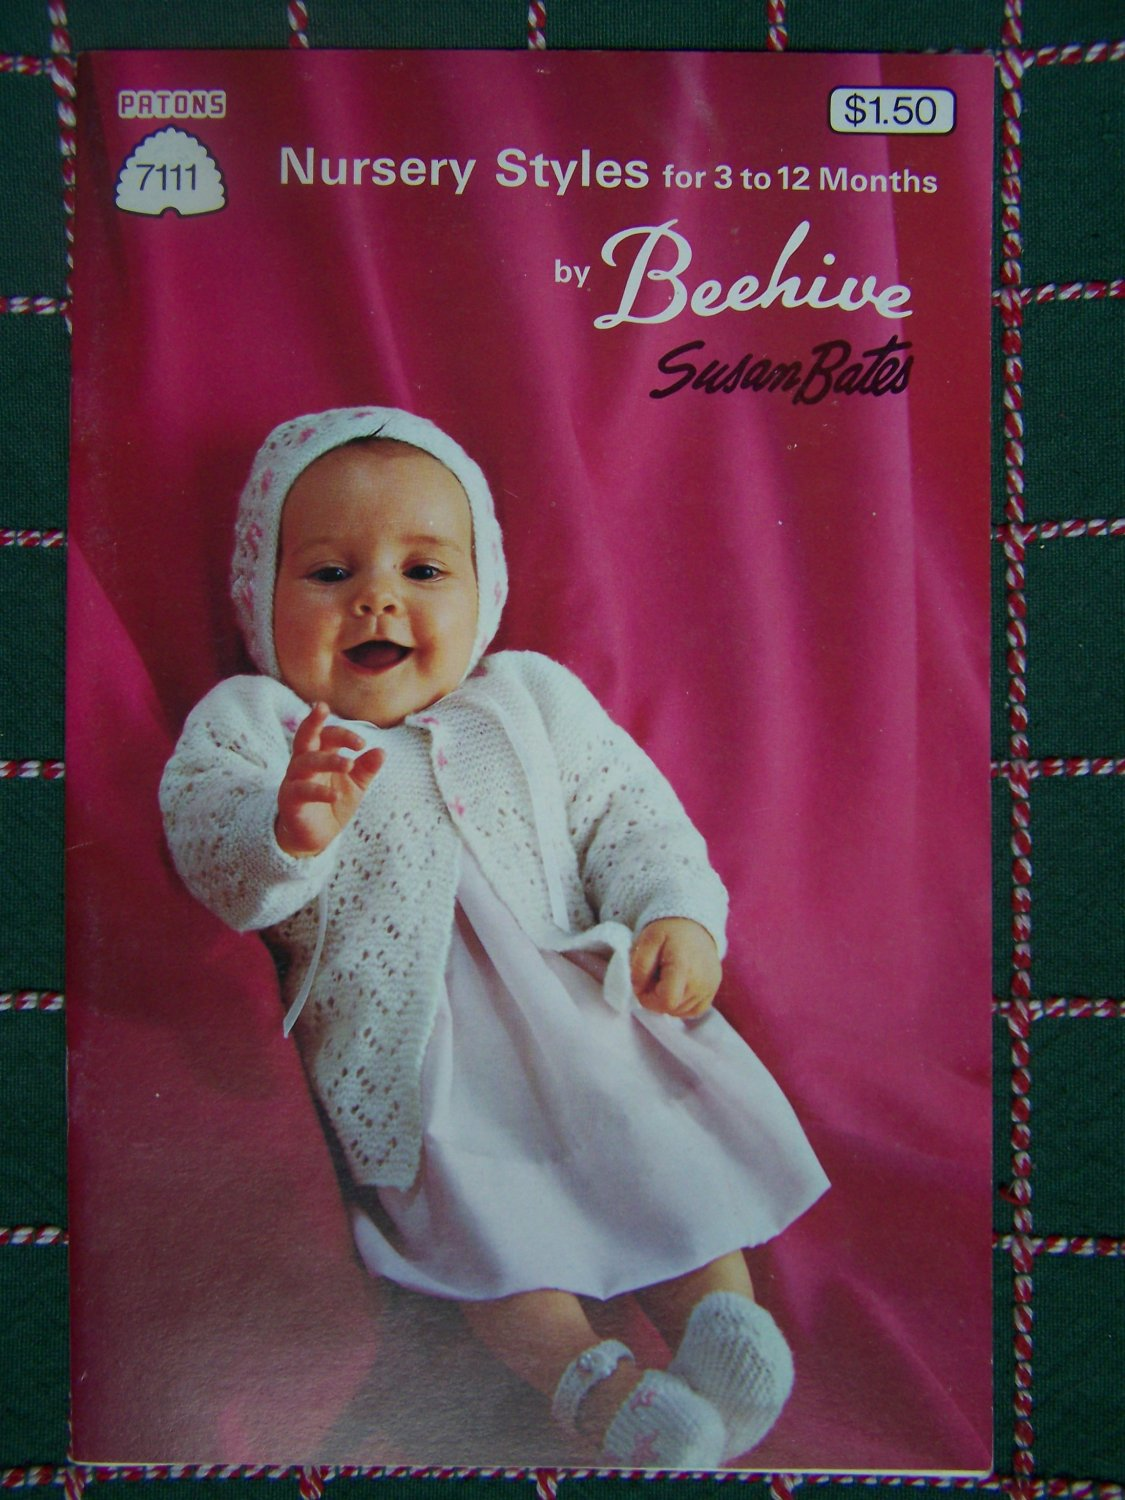 Vintage Susan Bates Nursery Layette Baby Knitting Patterns Book 7111